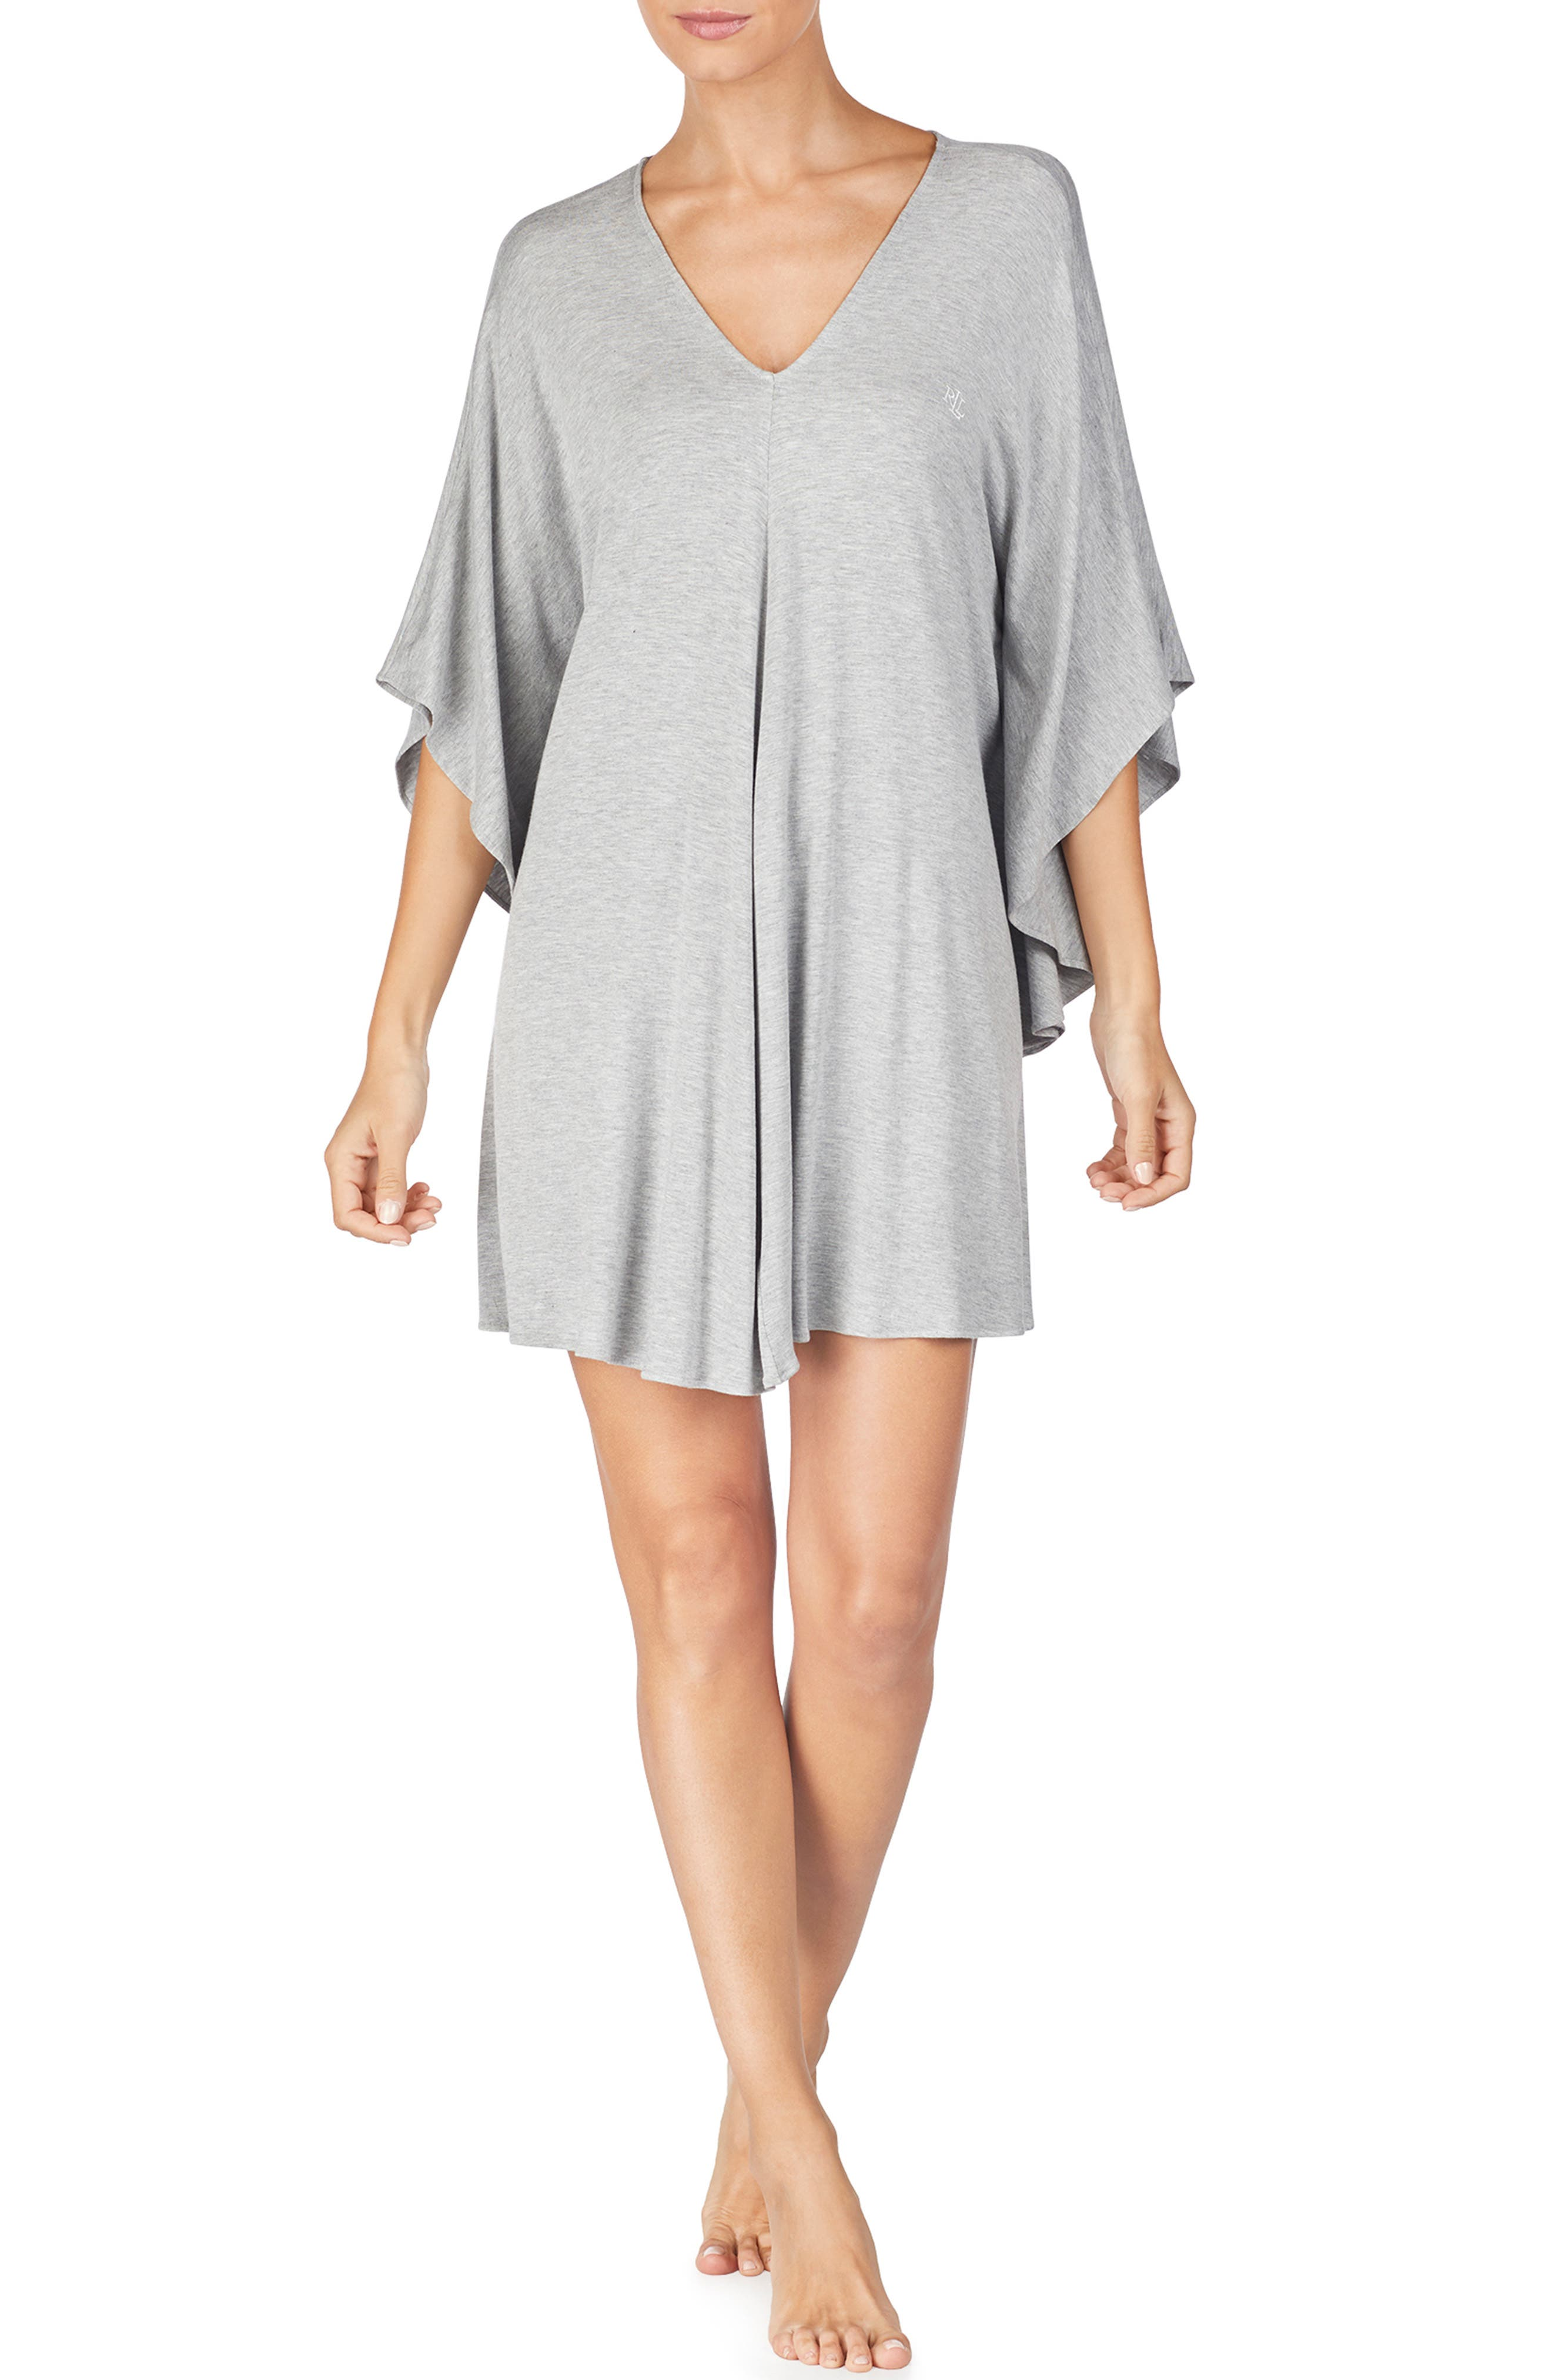 LAUREN RALPH LAUREN, Caftan Nightgown, Main thumbnail 1, color, GREY